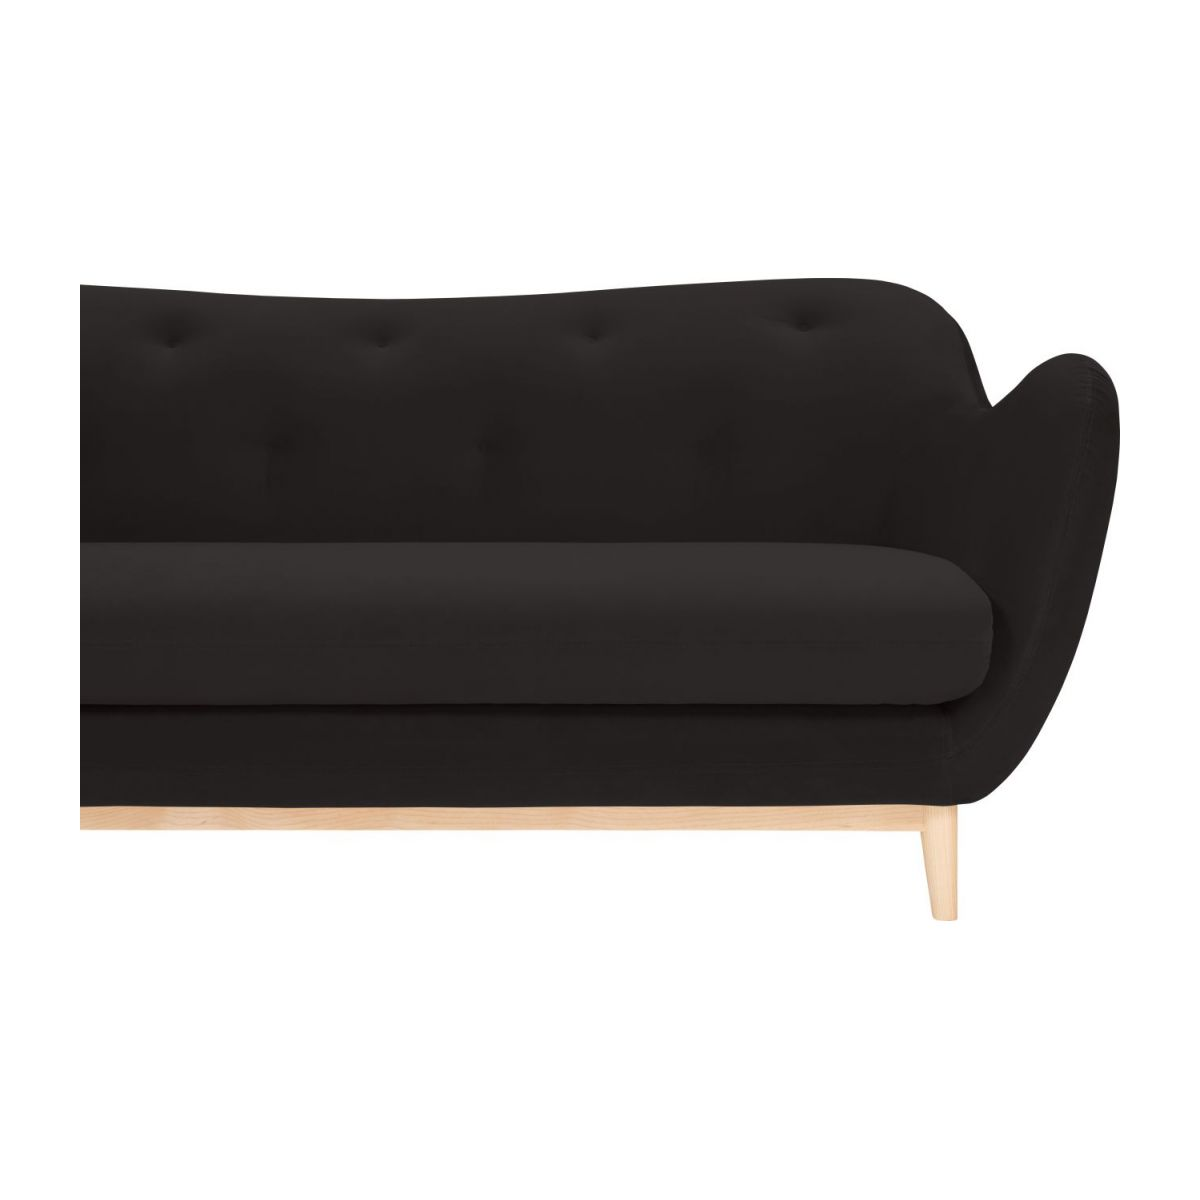 2-seat sofa made of velvet, grey n°5